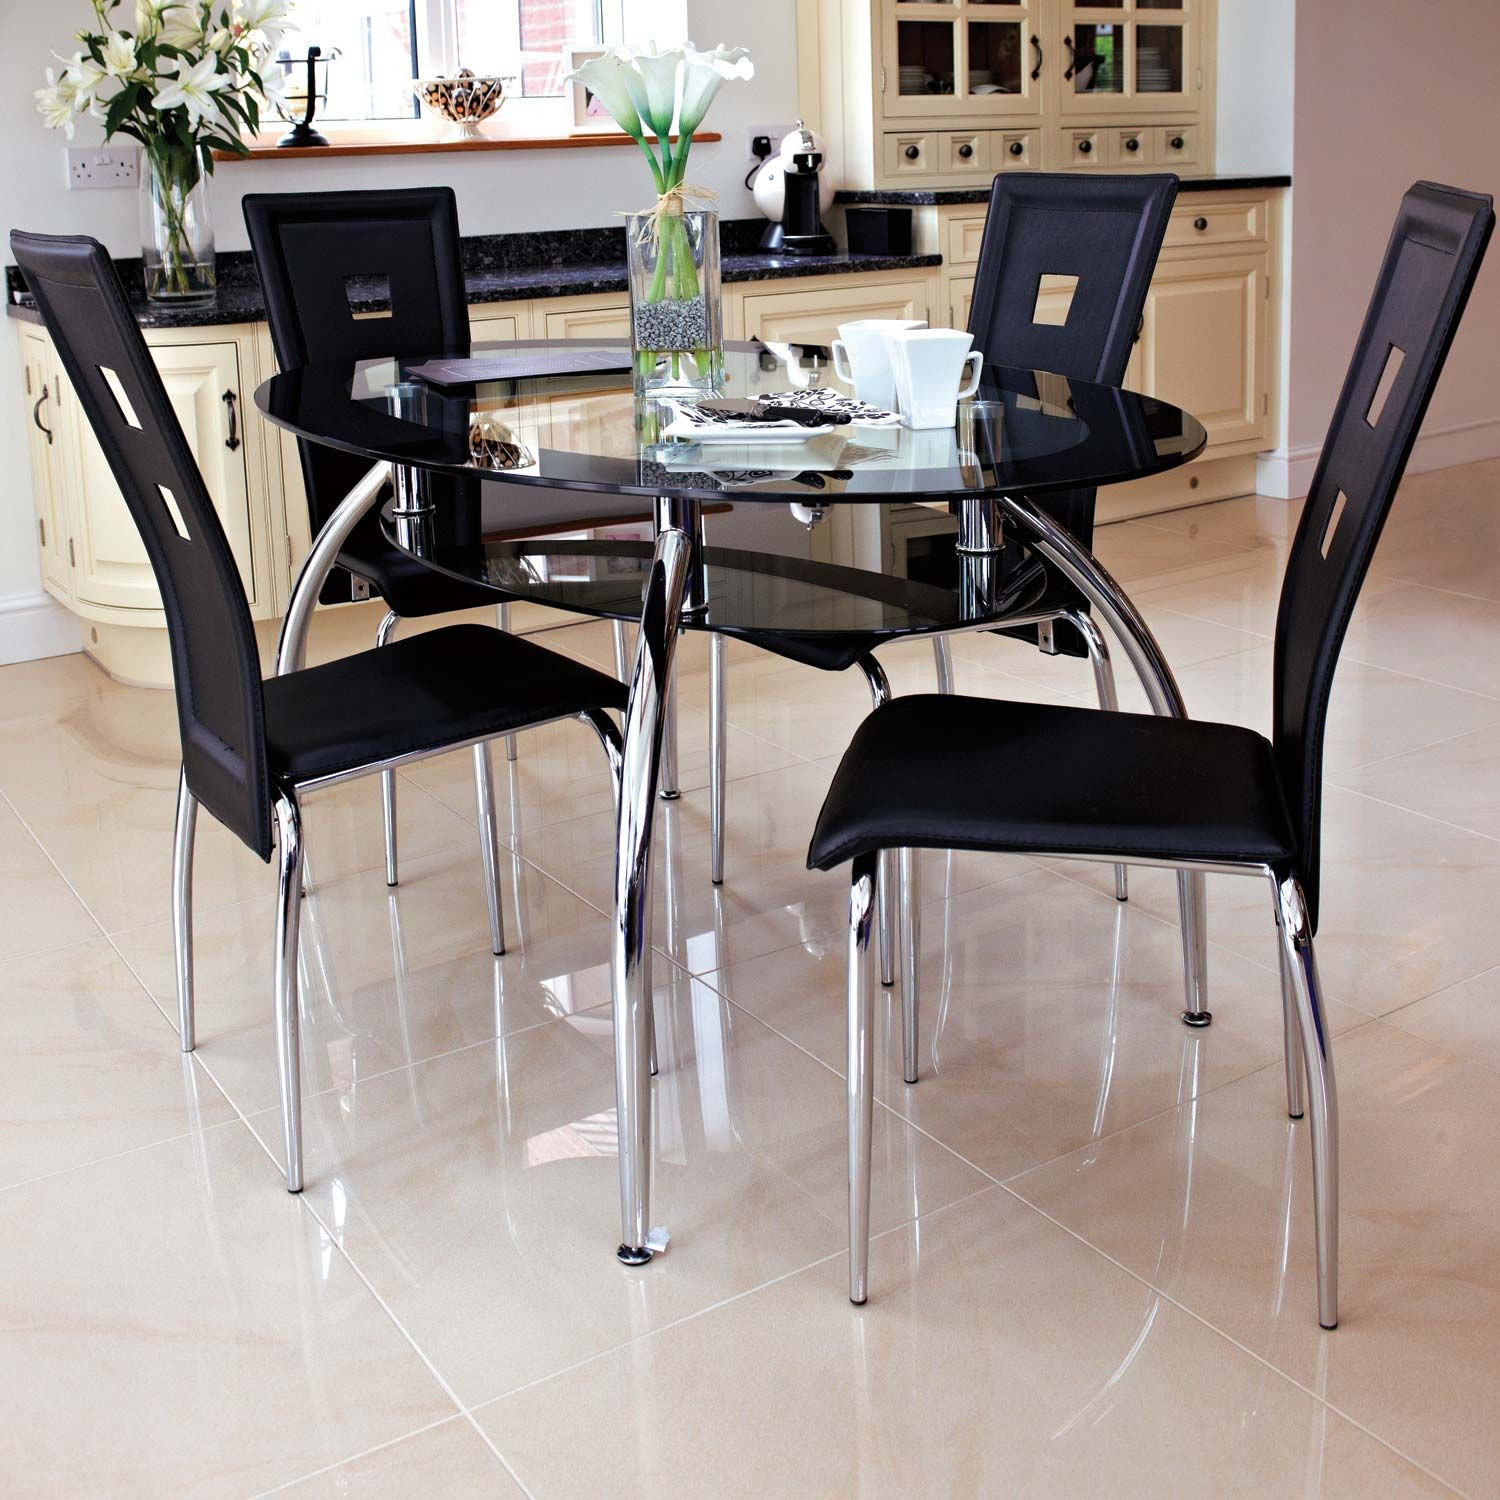 Glass Dining Table Set 4 Chairs Abbey Dining Set Clear Glass Table With 4 Black Chairs Black